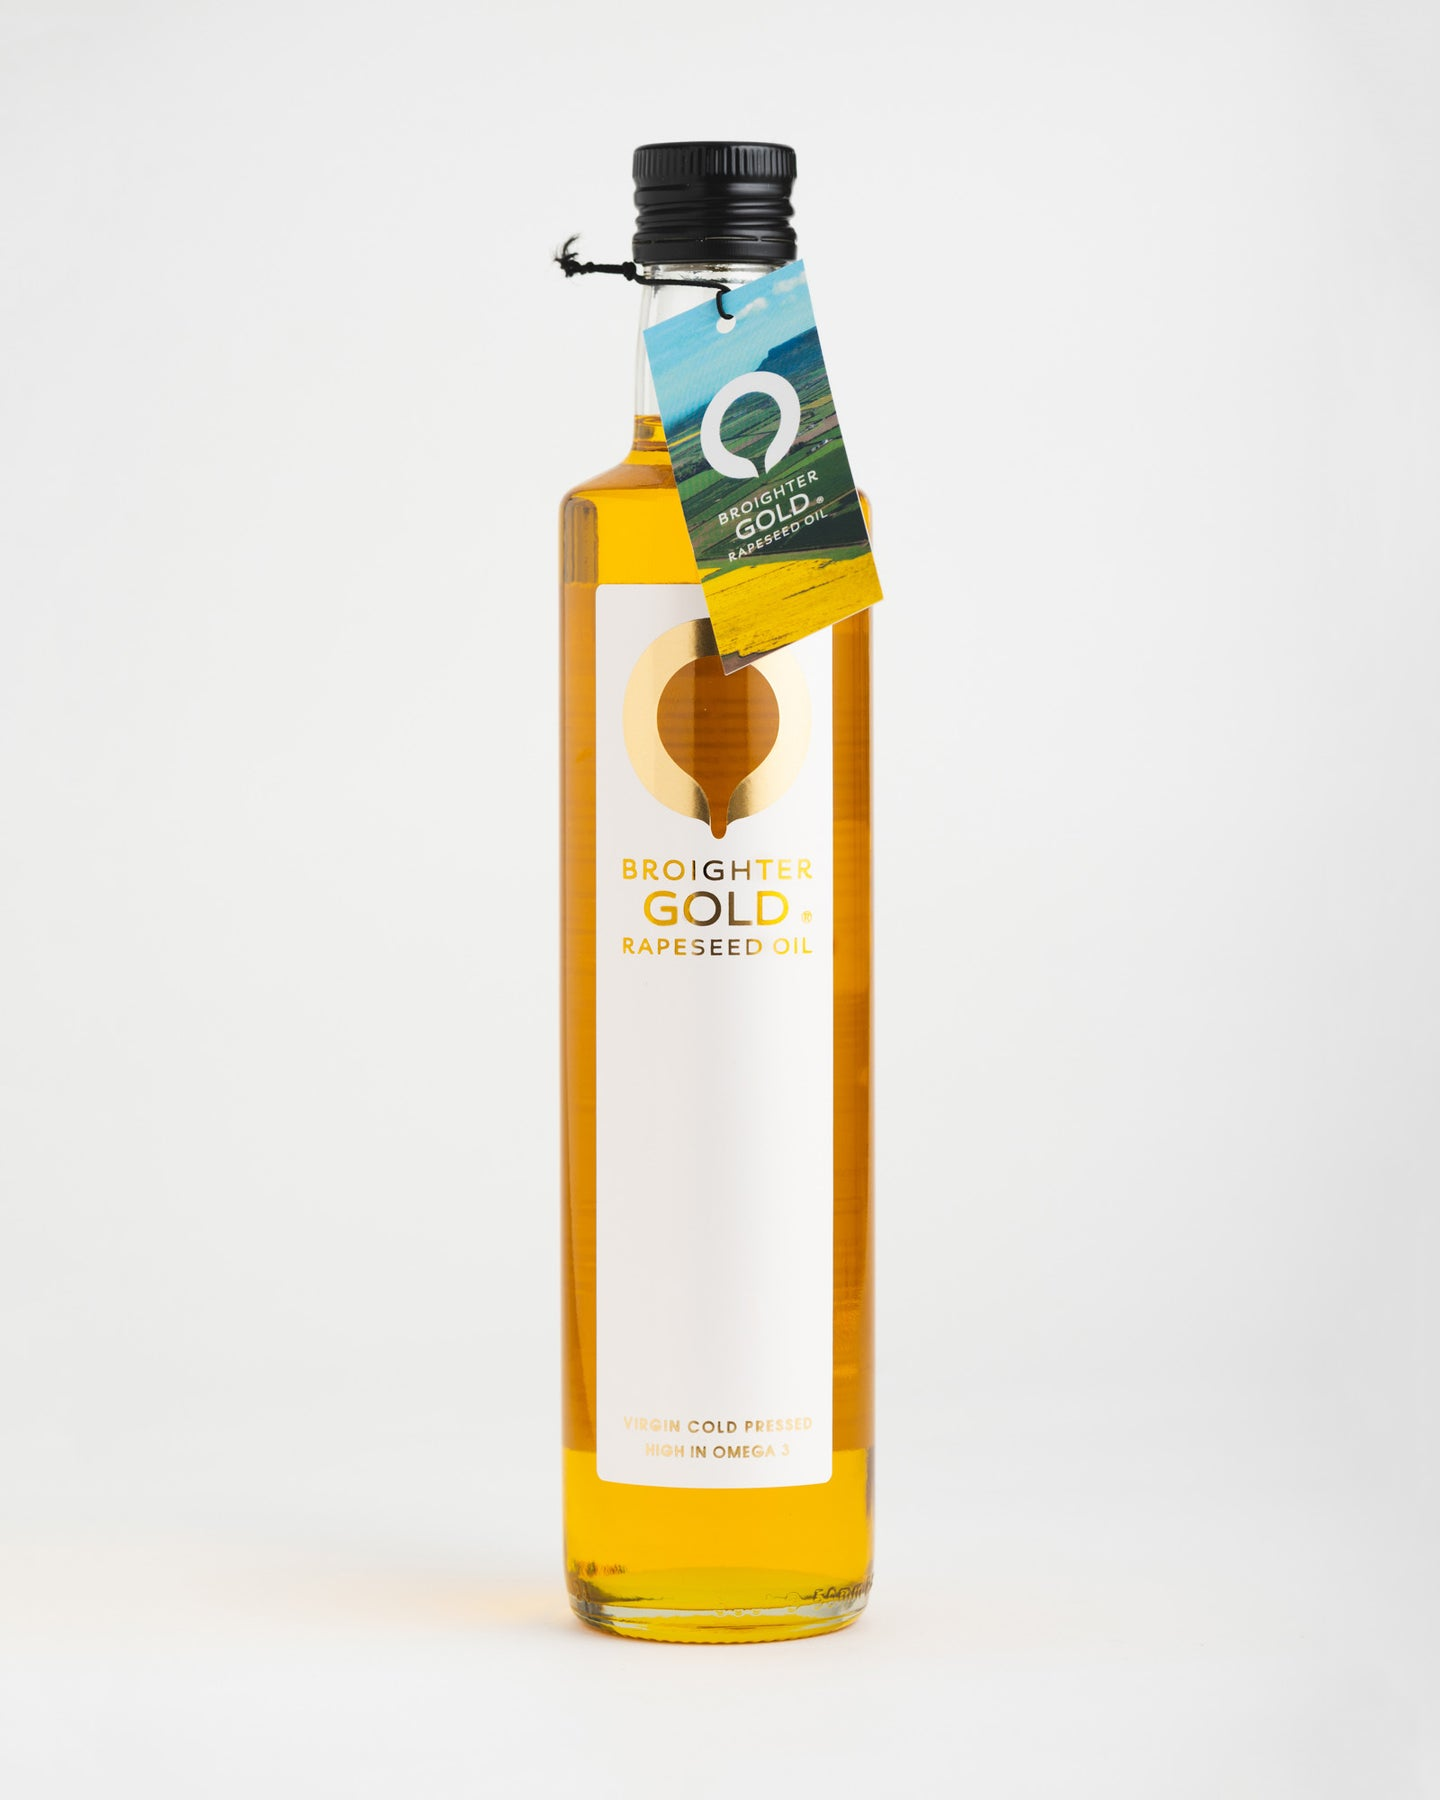 Broighter Gold - Original Rapeseed Oil